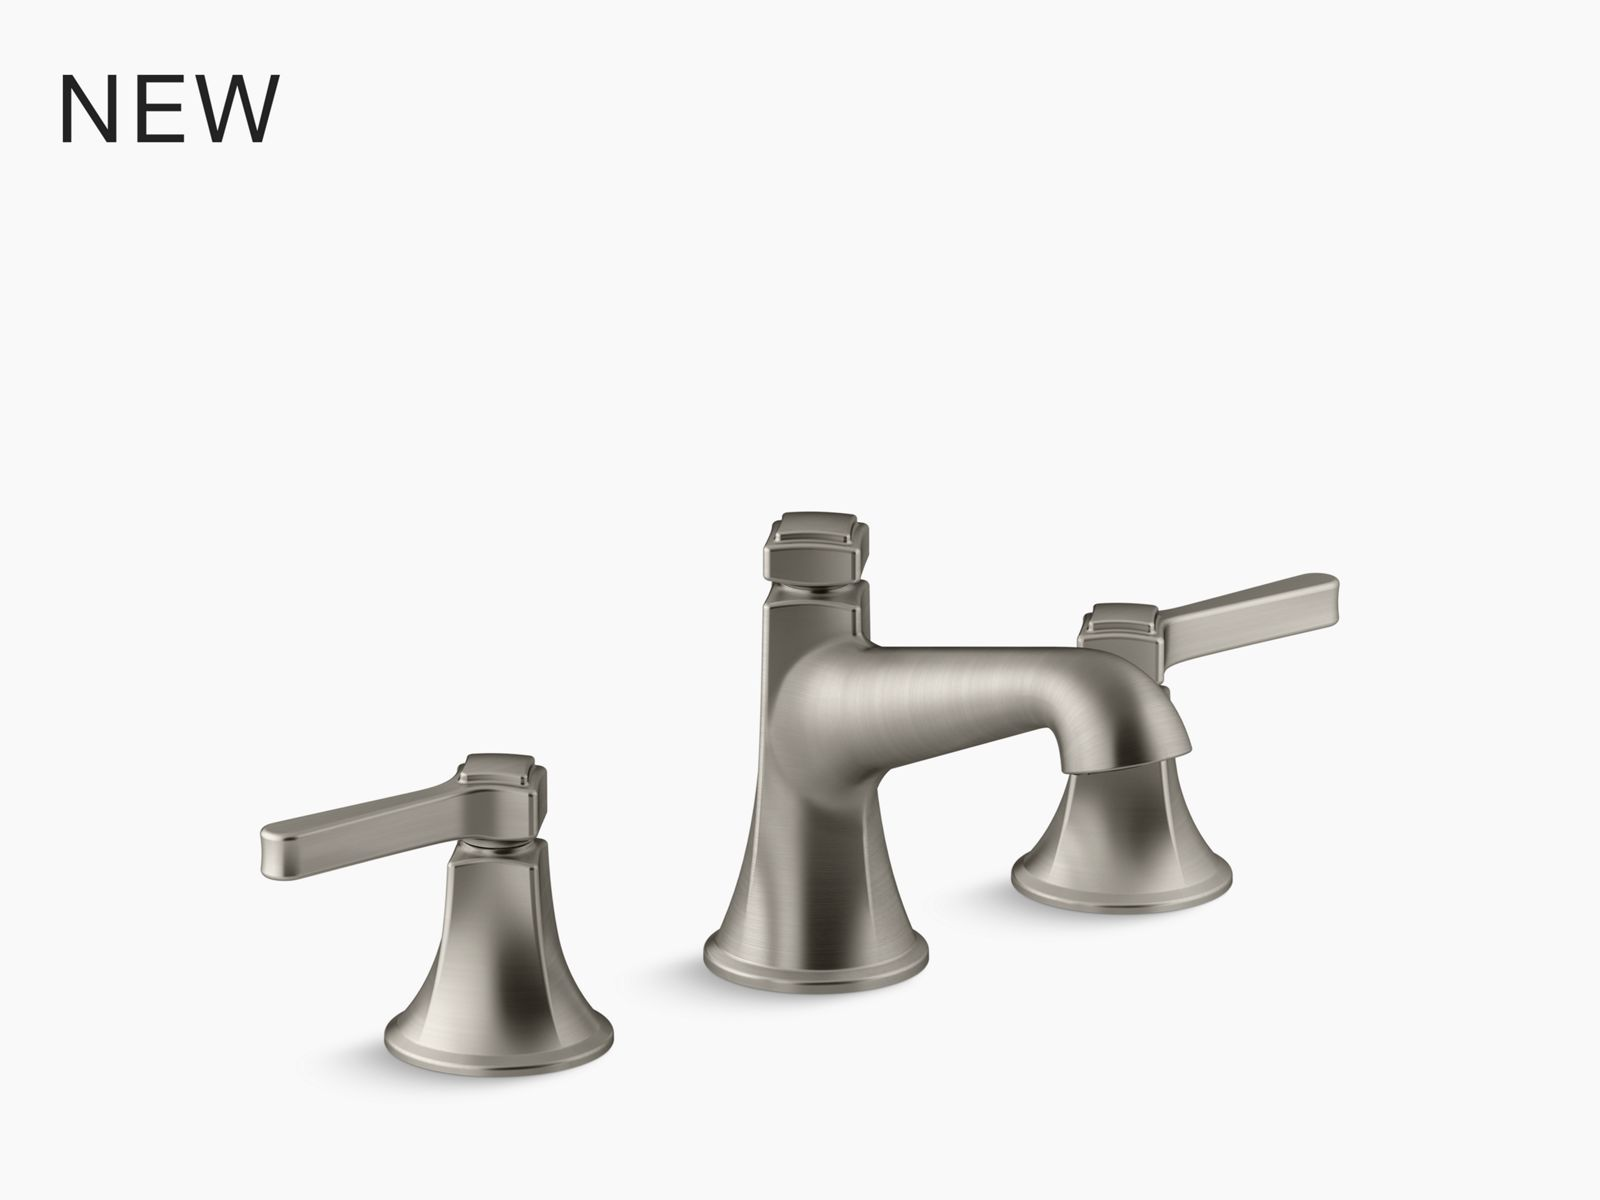 rubicon single handle kitchen faucet with sidespray